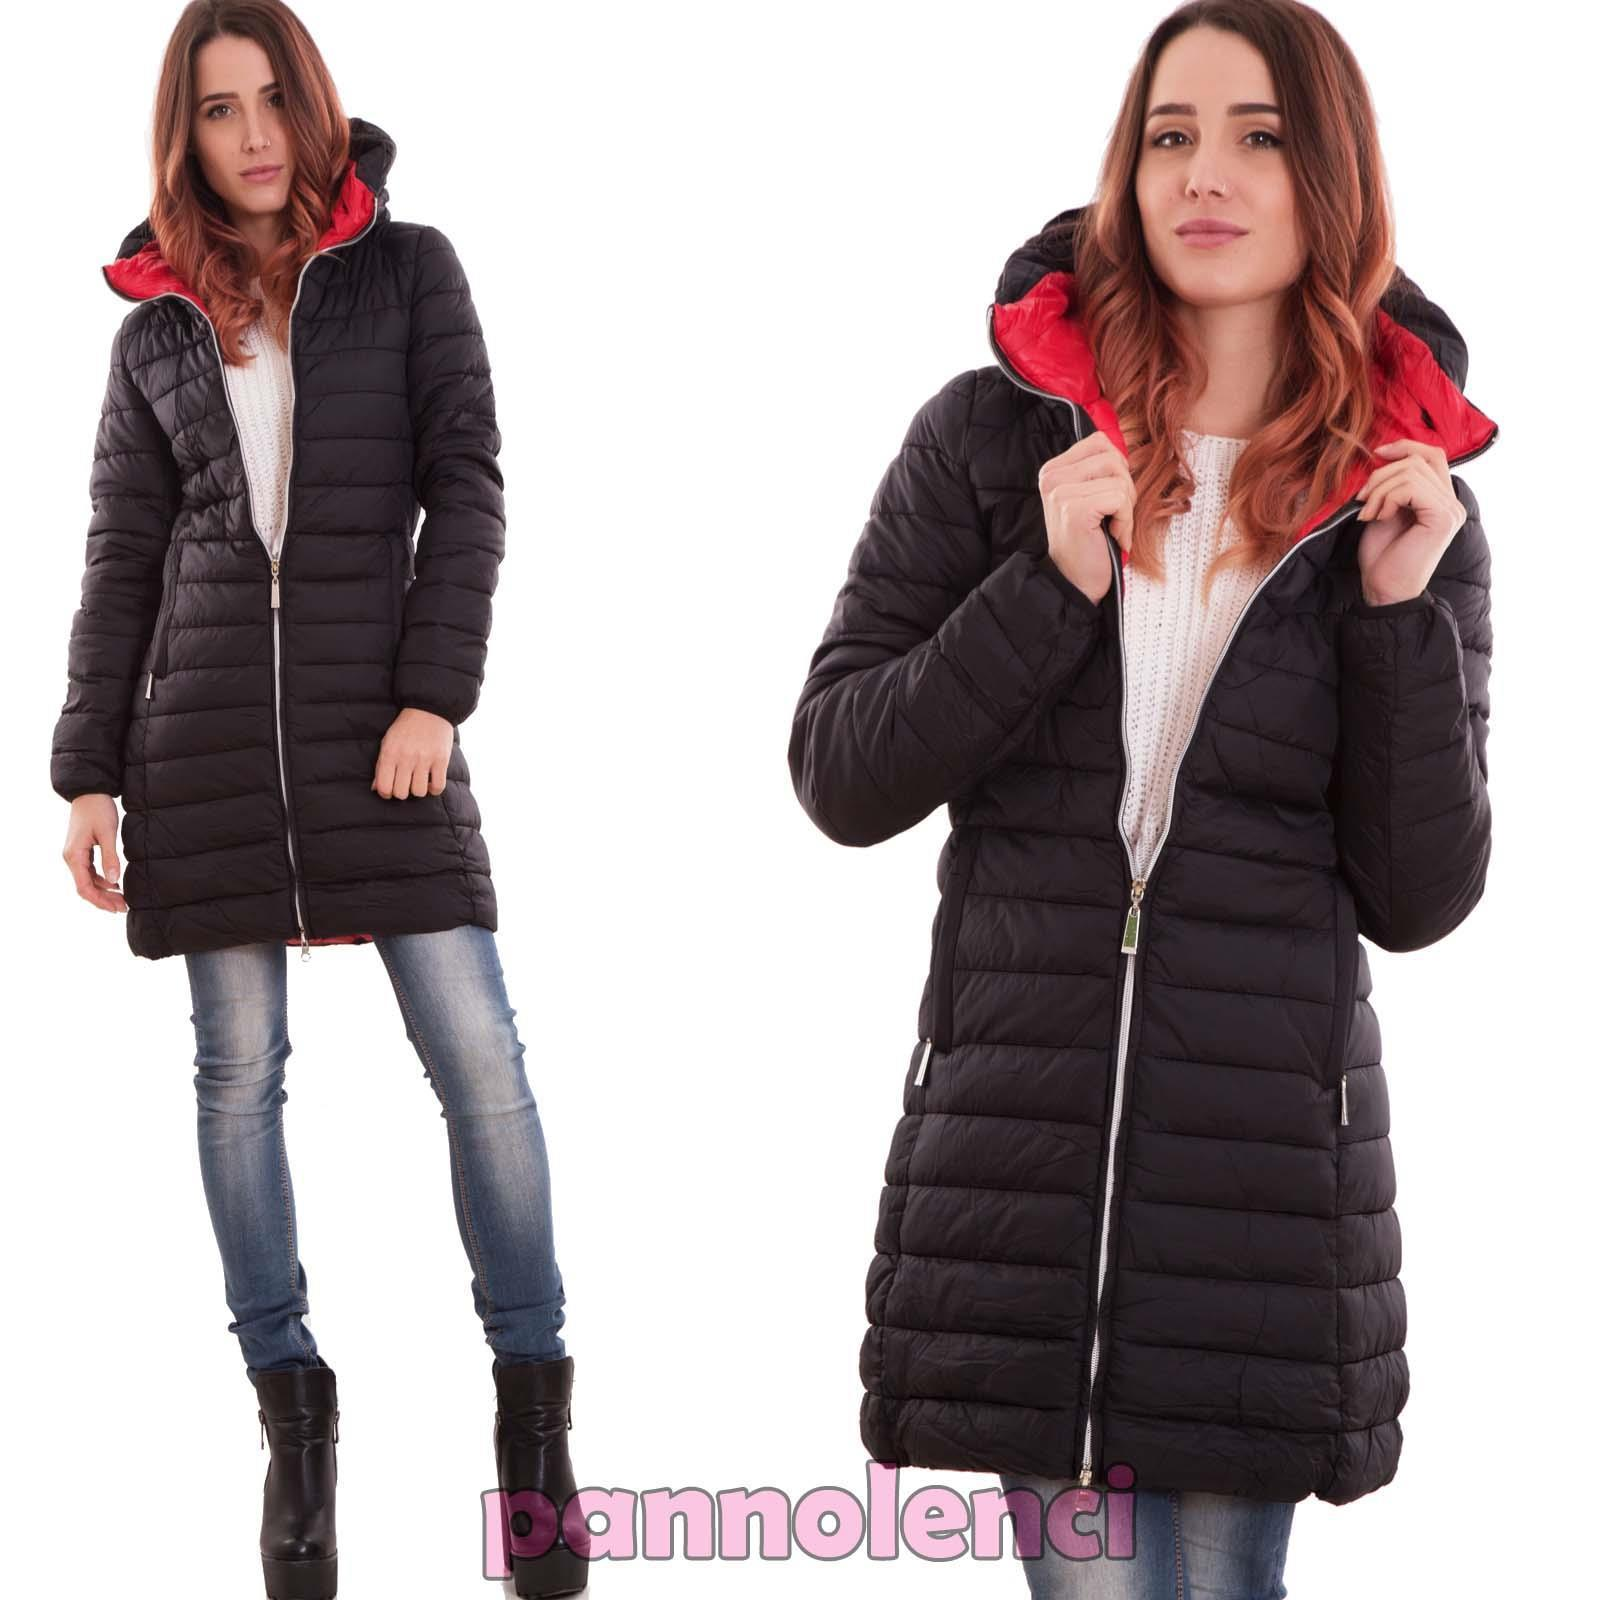 ZOGAA Women   Parkas   Slim Fit Winter Coat Solid Color Long Coats Hoodie Warm Jackets Overcoats 2019 Fashions Women   Parkas   Coats